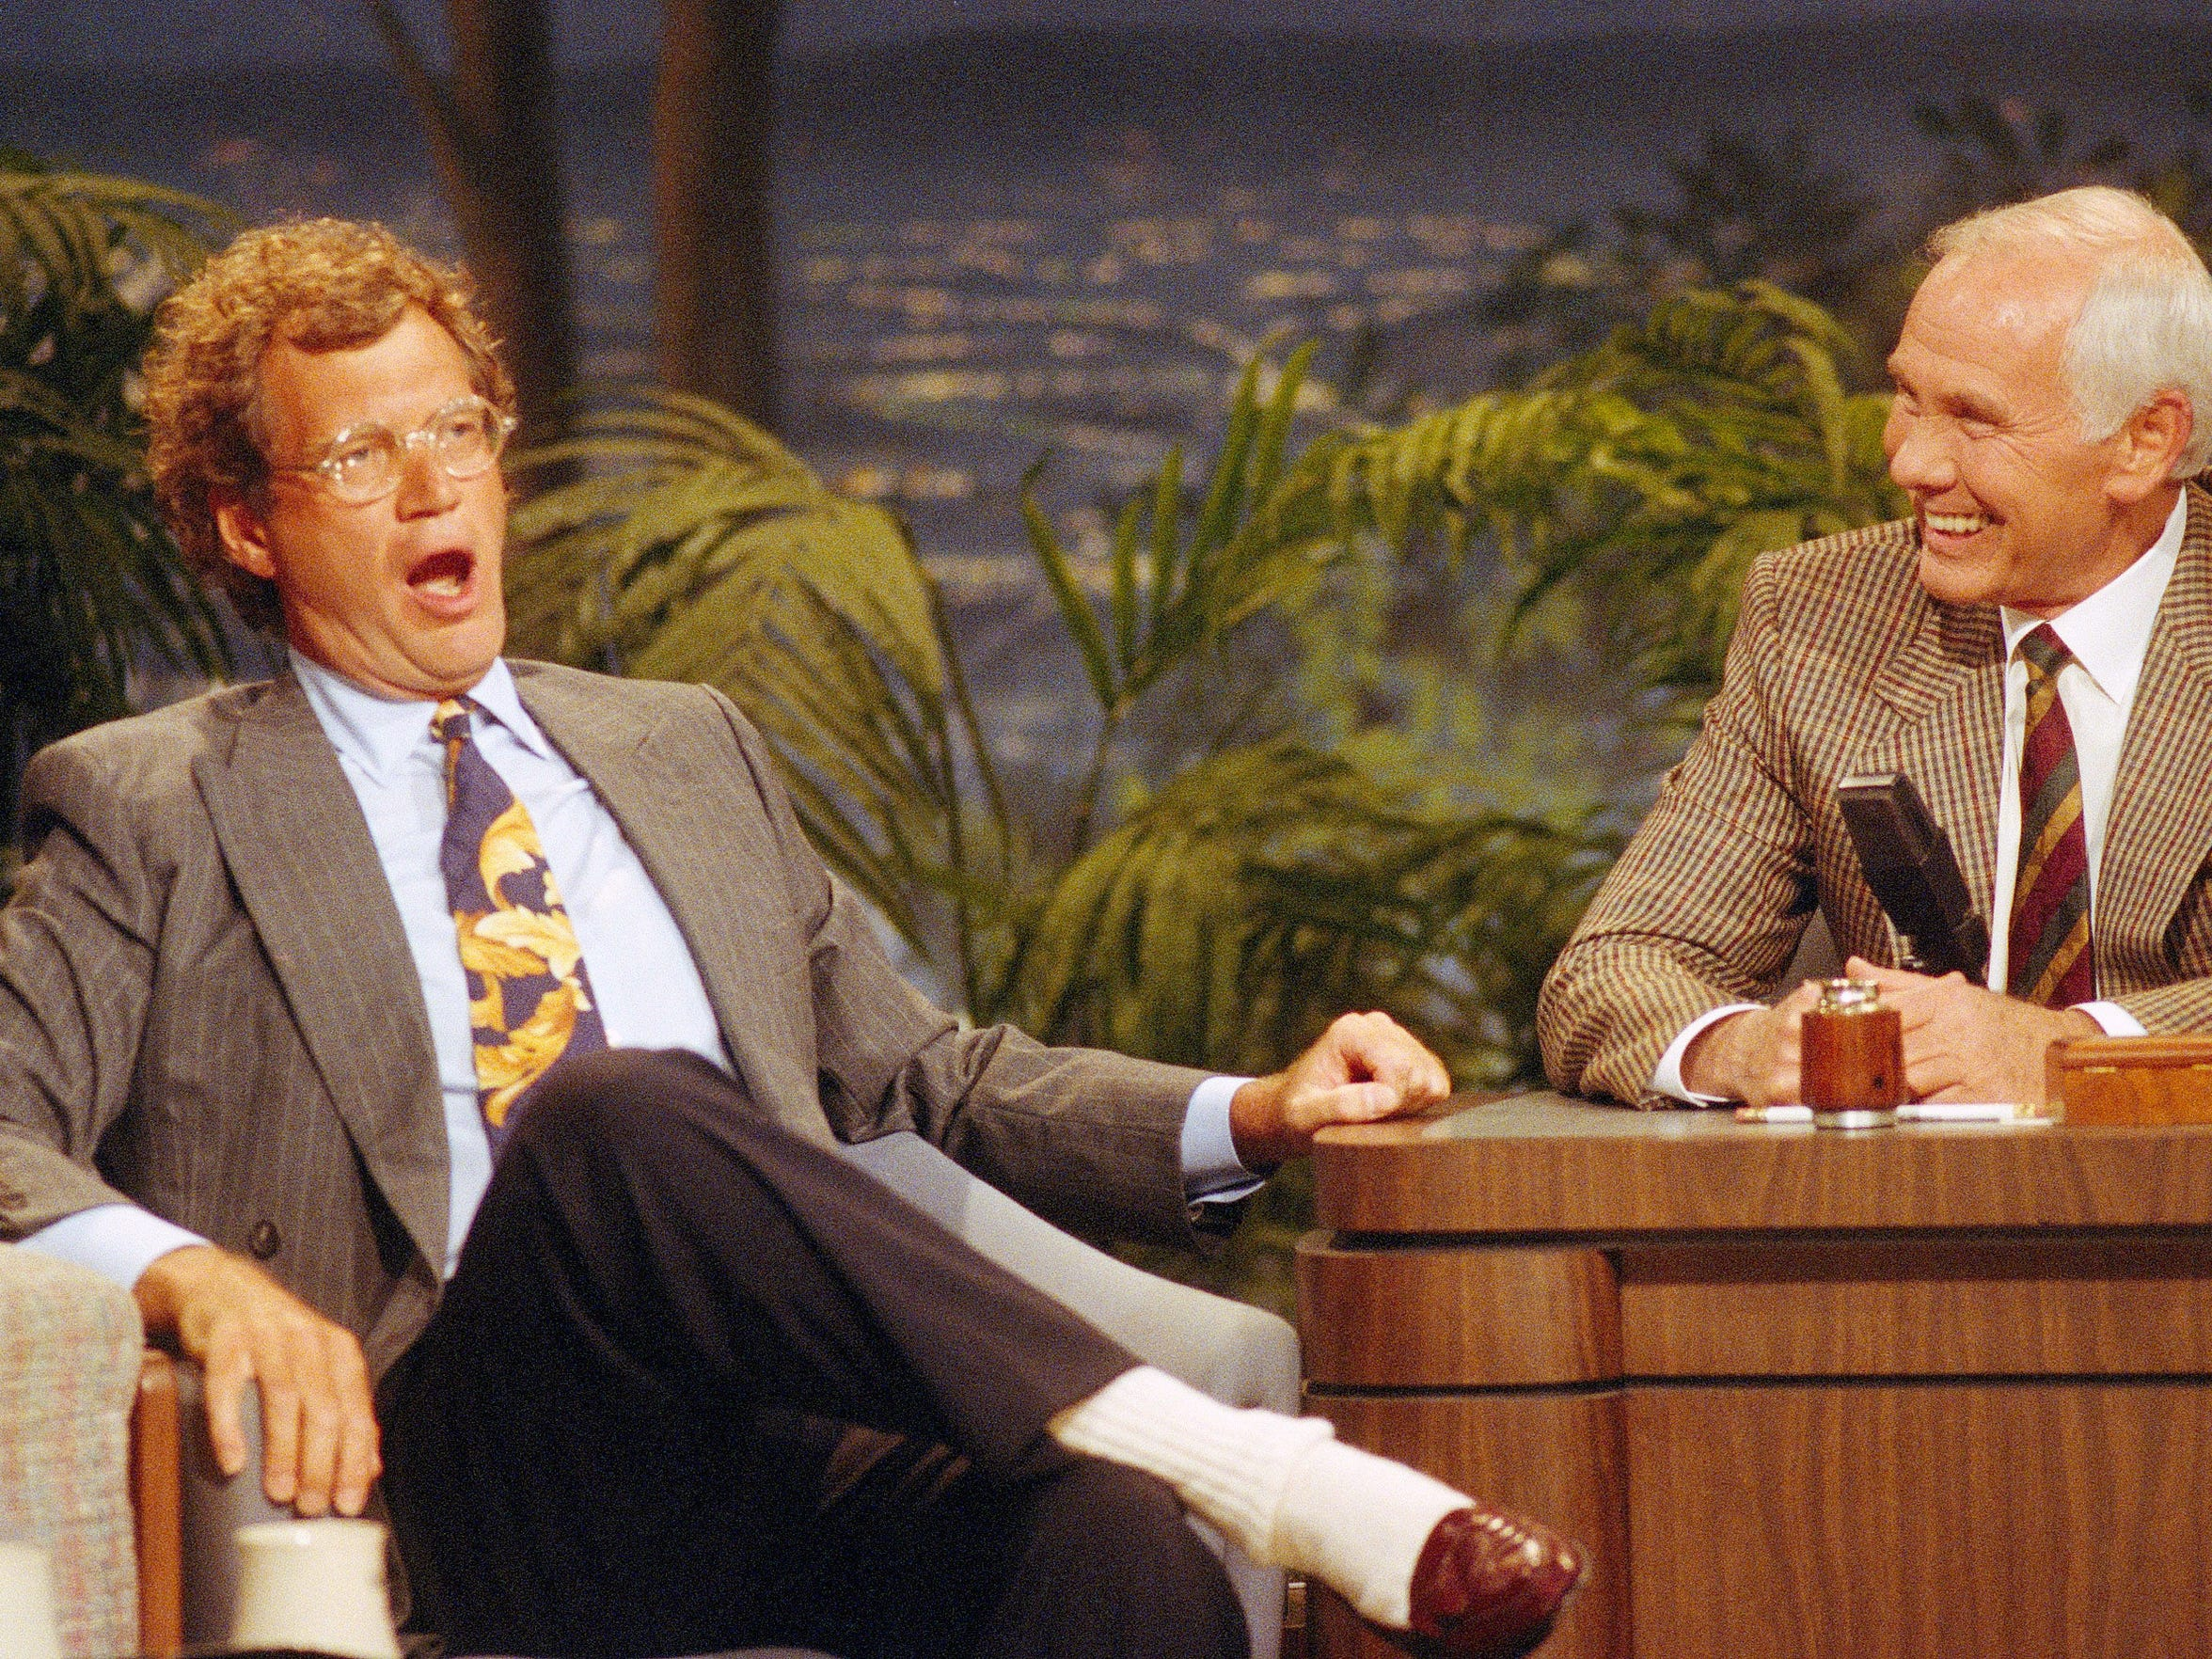 Letterman shares a laugh with Johnny Carson during